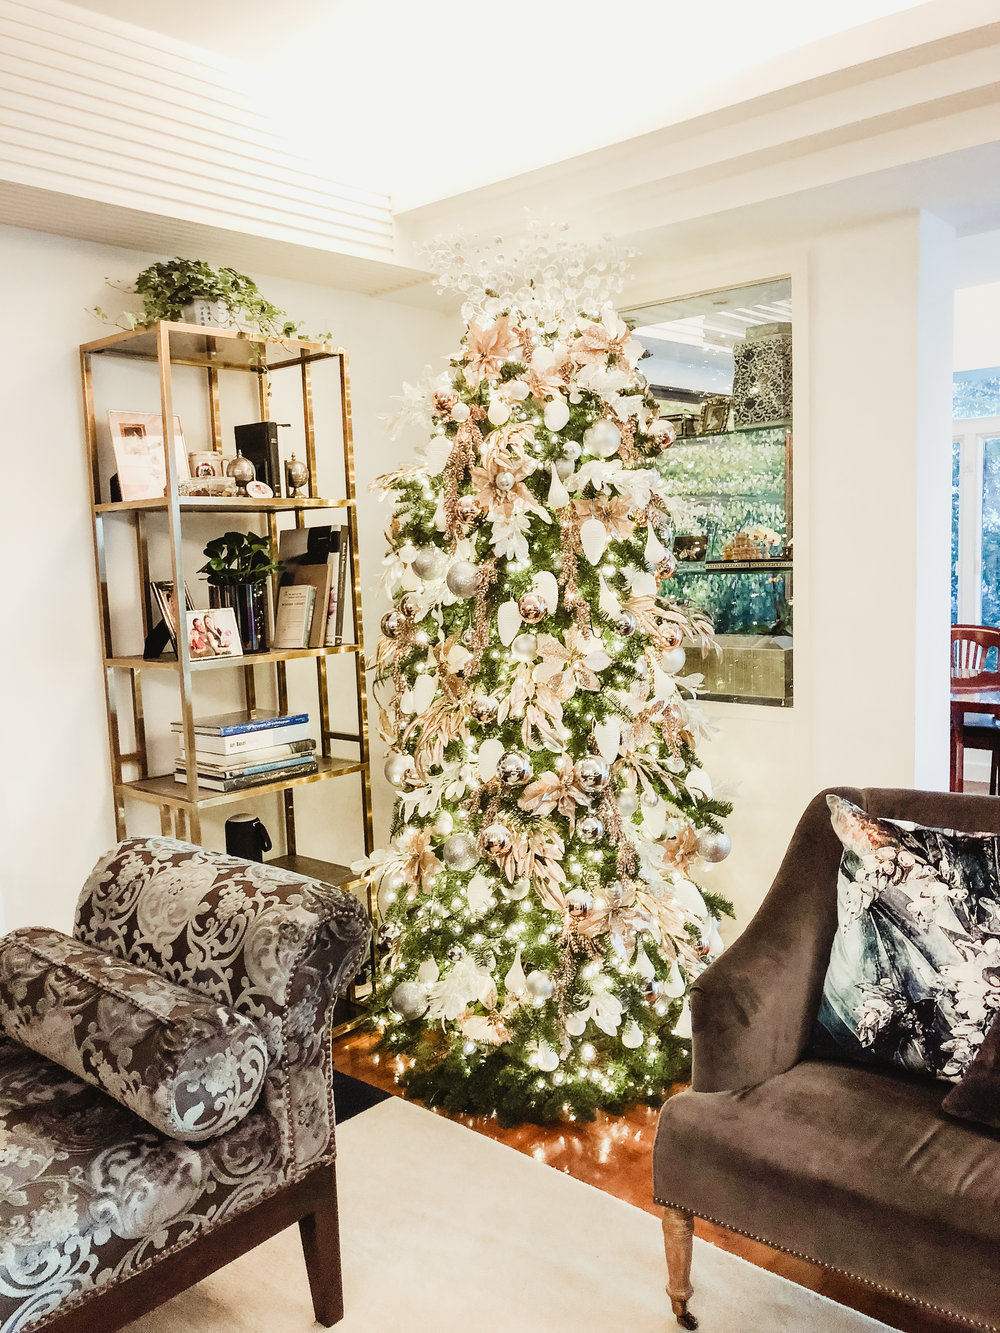 IT'S FEELING A LOT LIKE CHRISTMAS - We can't believe Christmas came so soon! Our Thanksgiving client wanted us to style their home for the holidays and we were just smitten with the chosen theme and colors. We decided to go with rose gold, blush pink, silver, champagne gold and white - a mix of cool and warm just to get that modern feel without losing that hearty feel of the season.We had a 9-foot tree to trim and a whole glass window to style. And we had the dining table and living room table to dress up. We went with tasteful and with just the right amount of decor for each area.